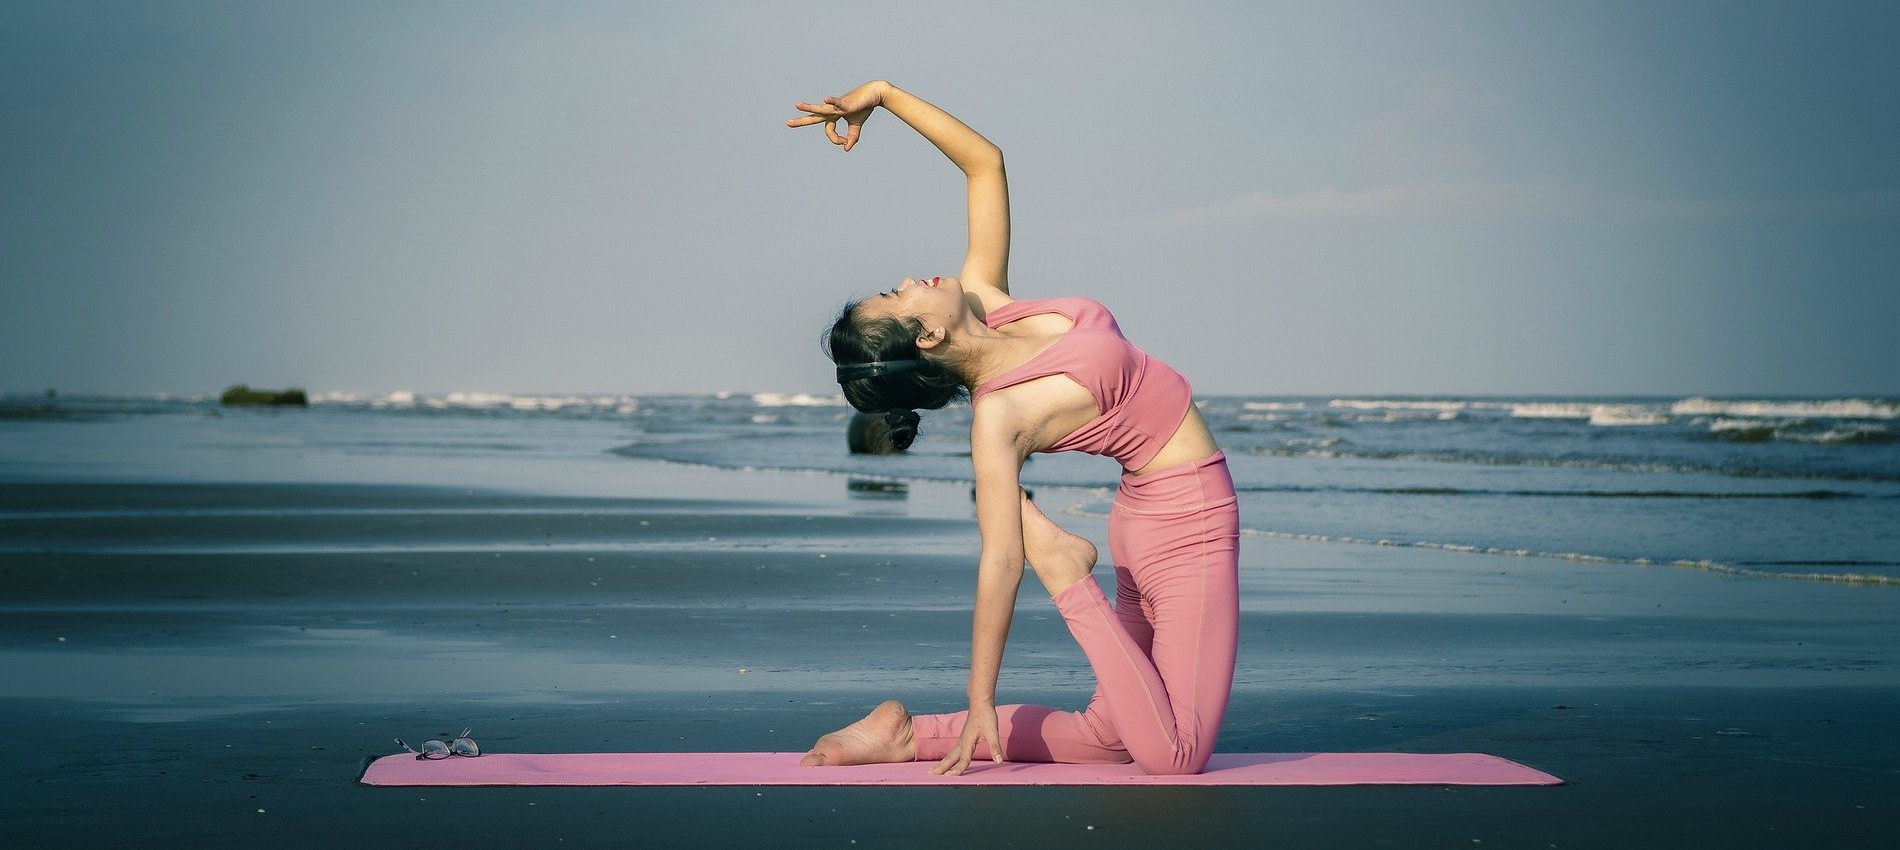 10 Tips To Destress and Reduce Lichen Sclerosus Flareups